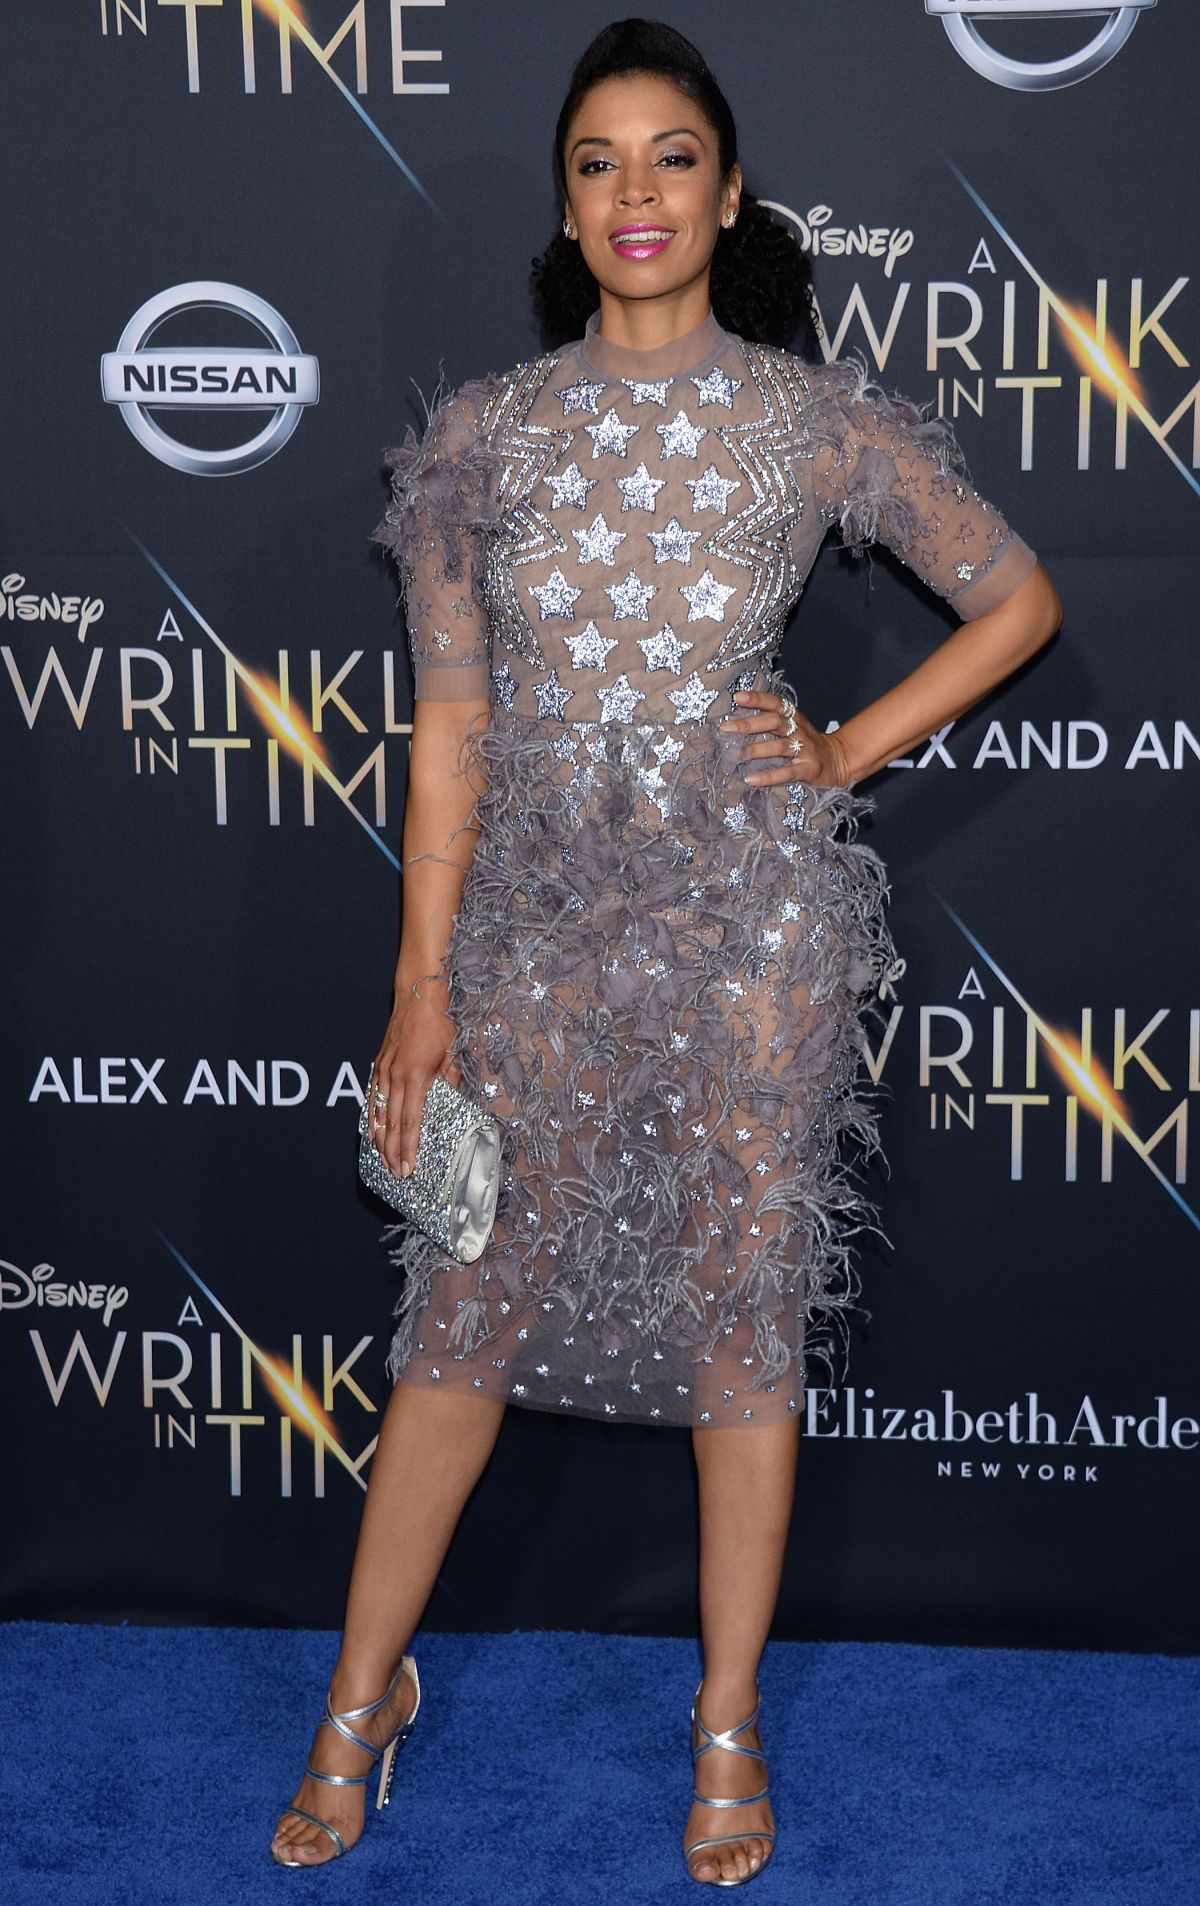 ade4653fa3c The company s red carpet credentials are also growing. The singer Rita Ora  wore a mesh